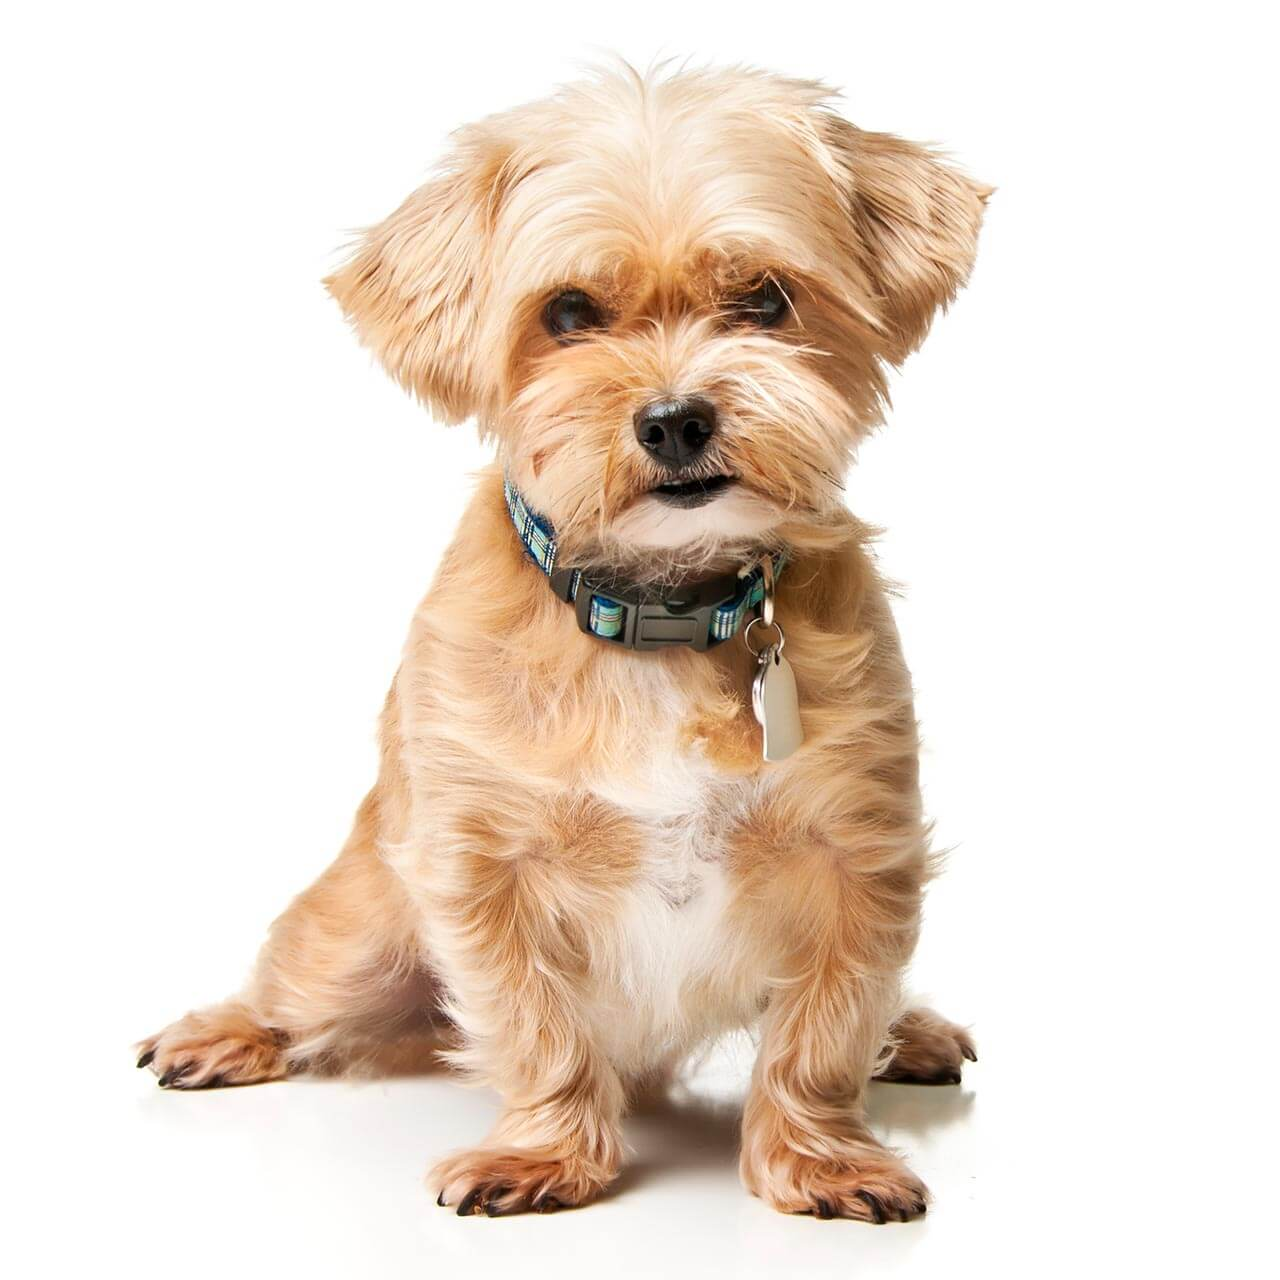 Shorkie Tzu Dog Breed 187 Everything About Shorkie Tuzs